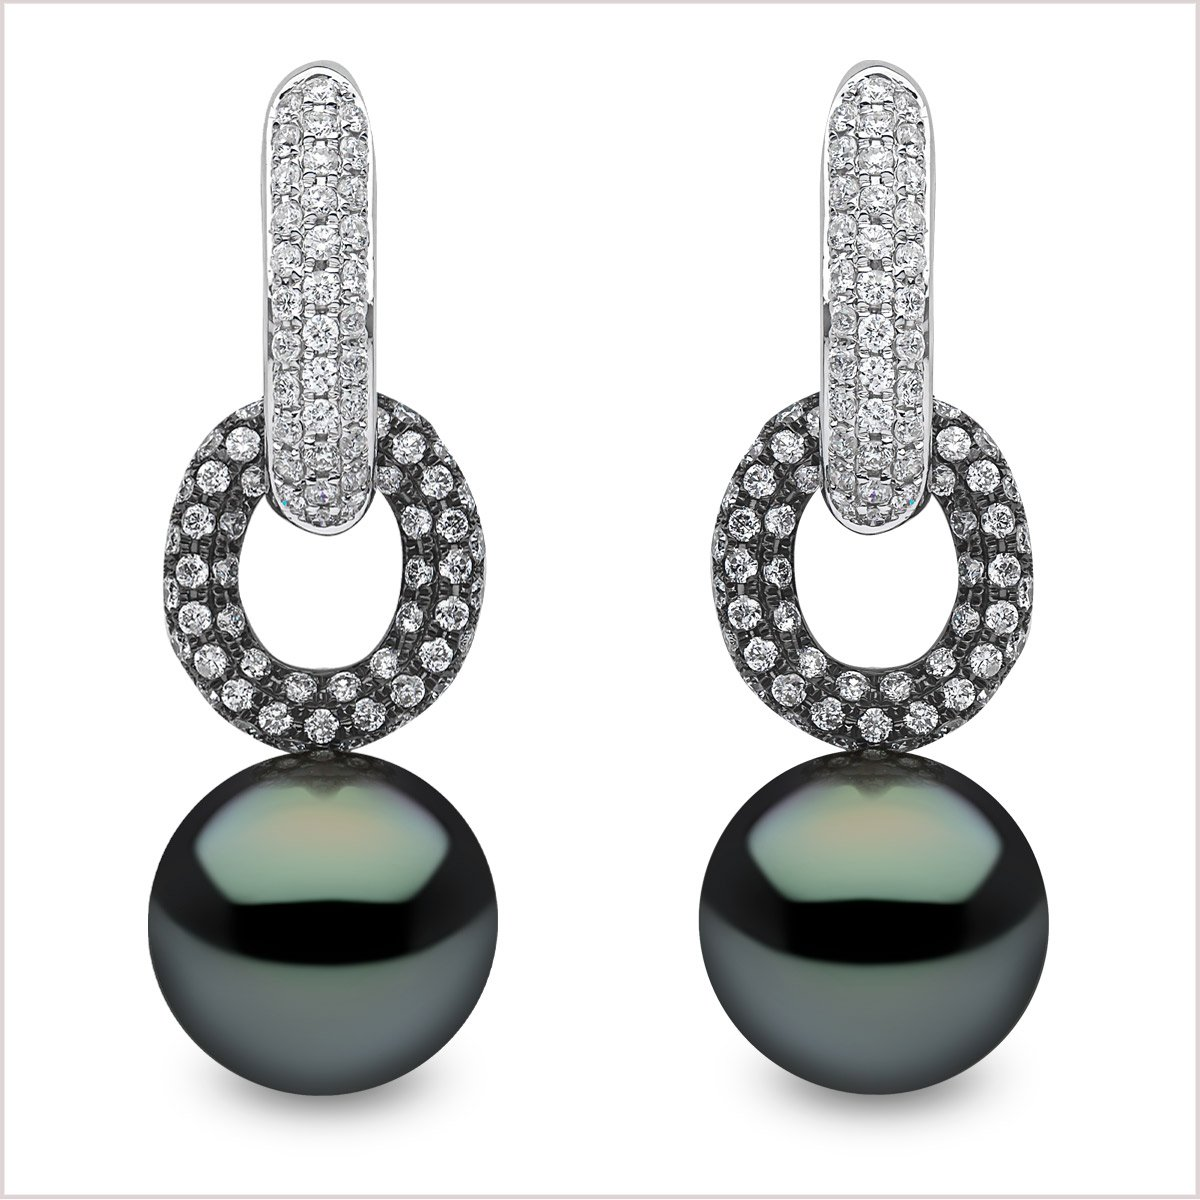 Yoko London Novus Diamond and Tahitian Pearl Earrings